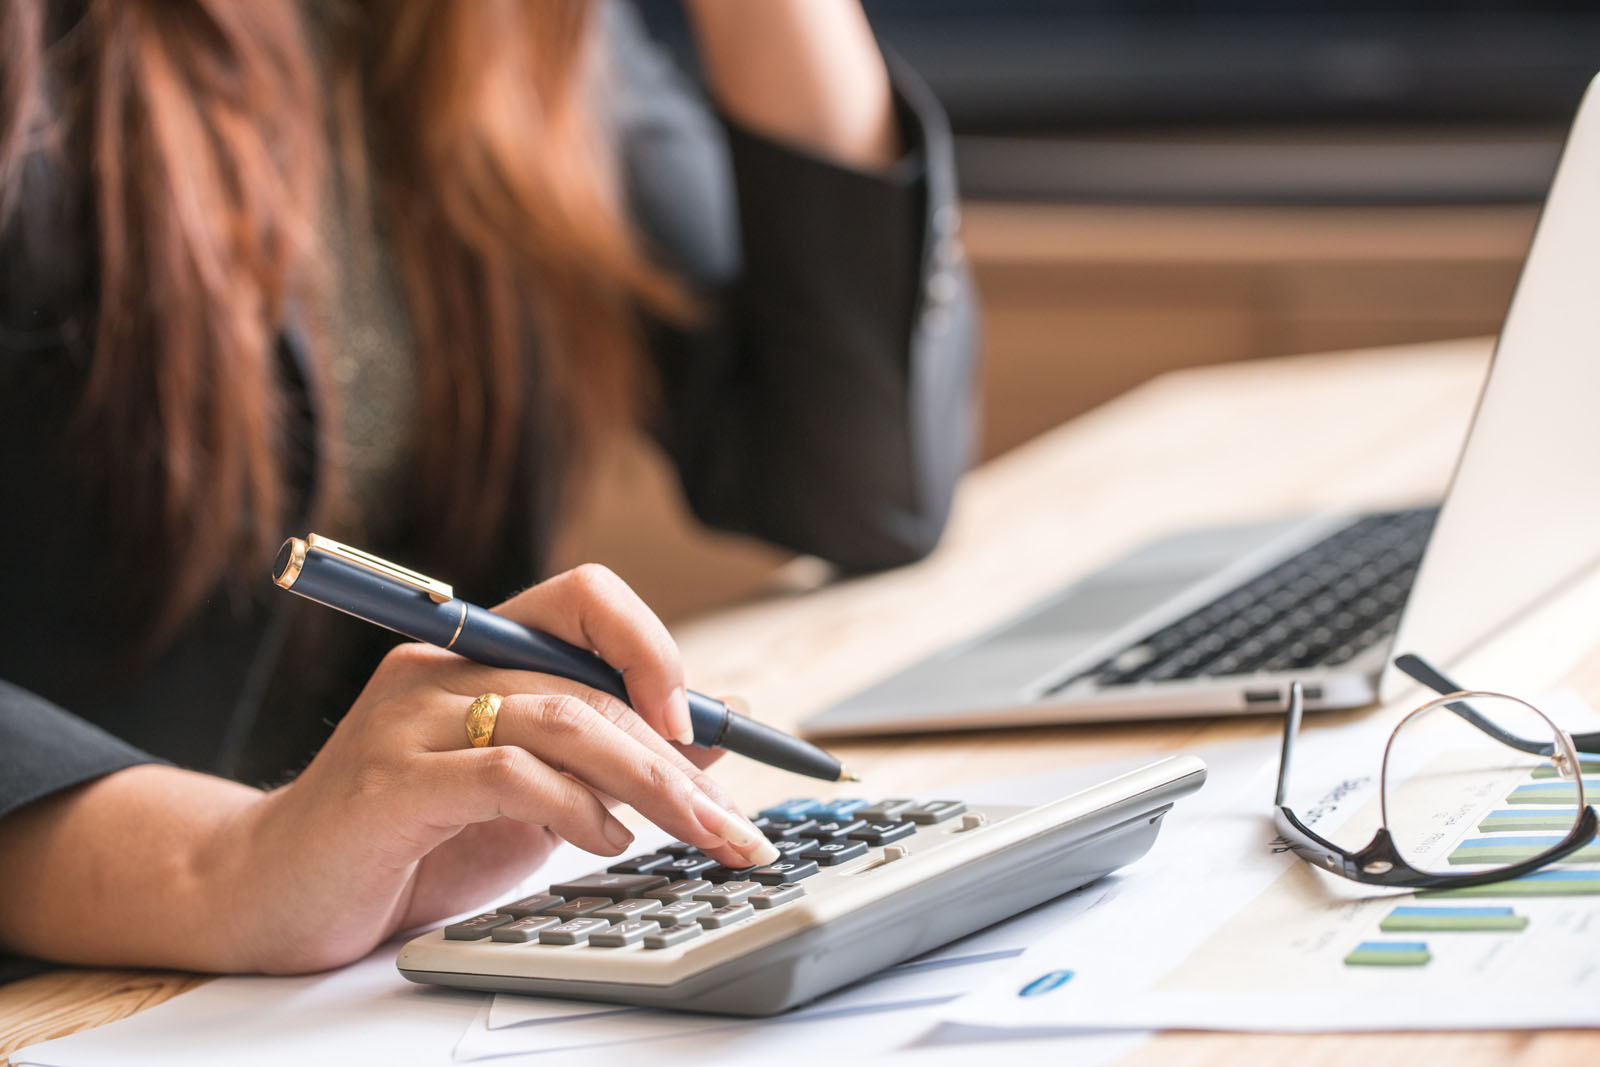 A margin account could be the answer to your cash crunch when it comes to funding a business venture or purchasing a second home. But there are also risks to consider. (Thinkstock)